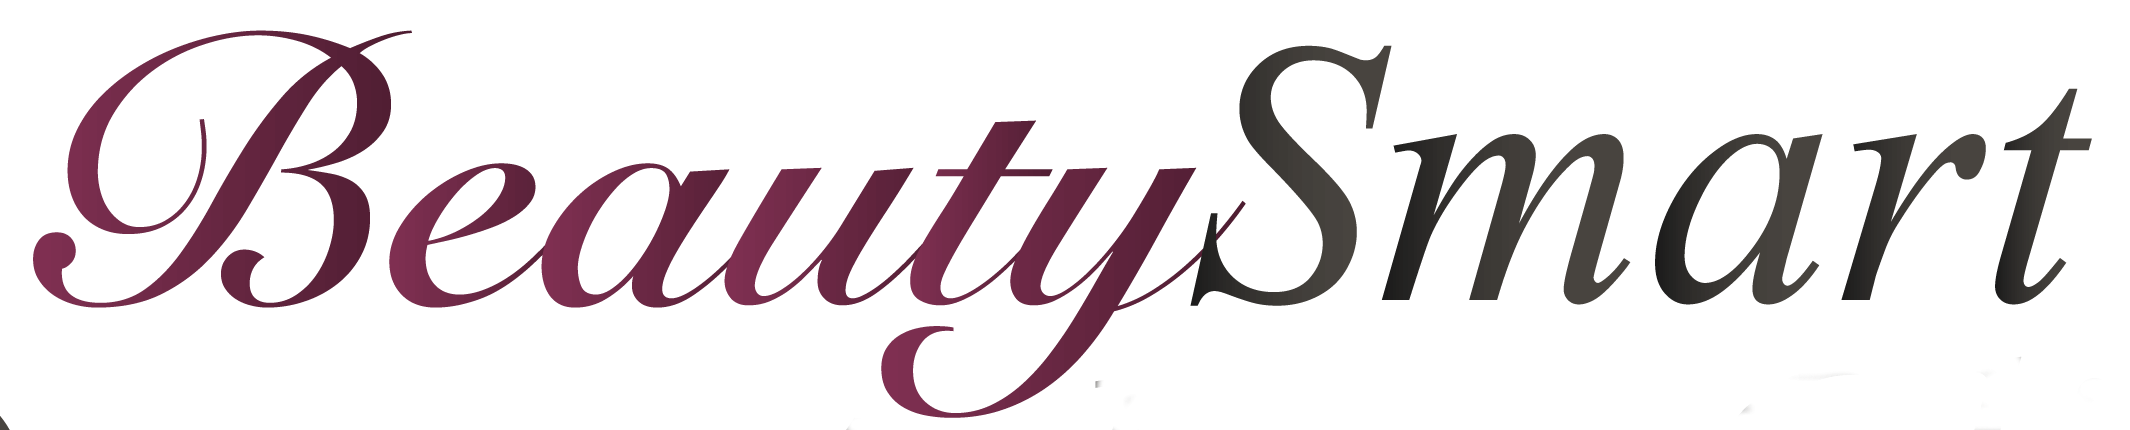 BeautySmart Medical Spa Dermatology/Aesthetics and more!